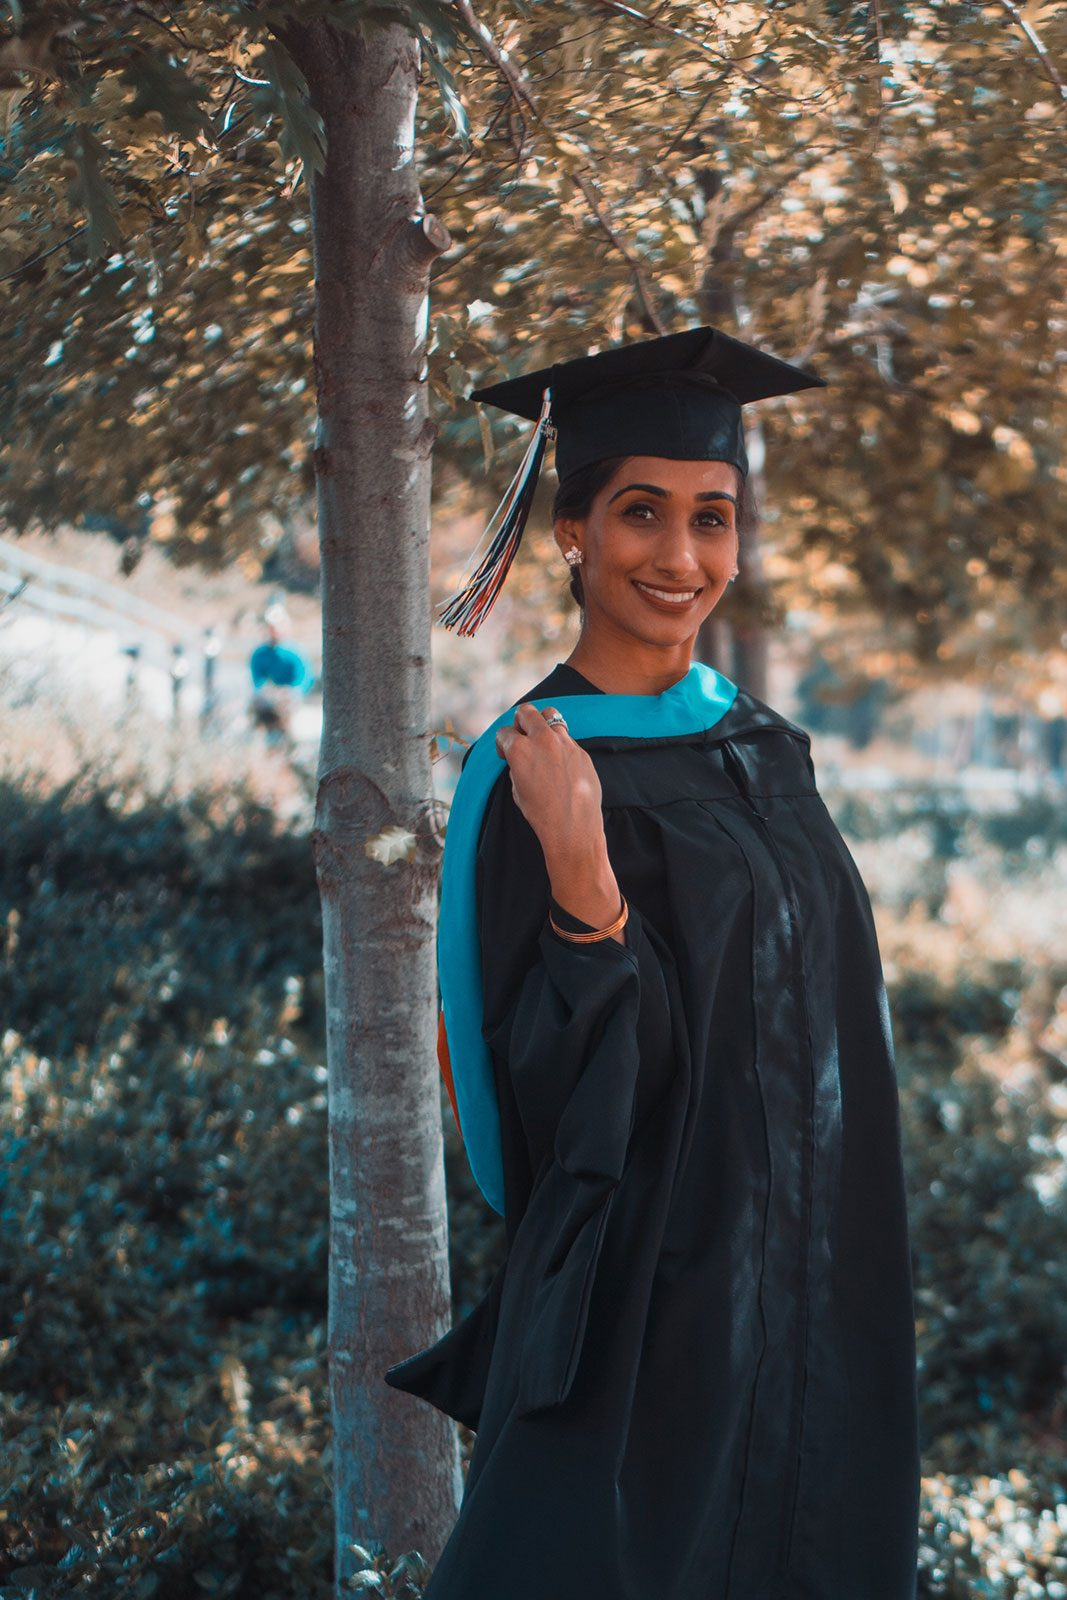 Woman on a sunny day in graduation gown